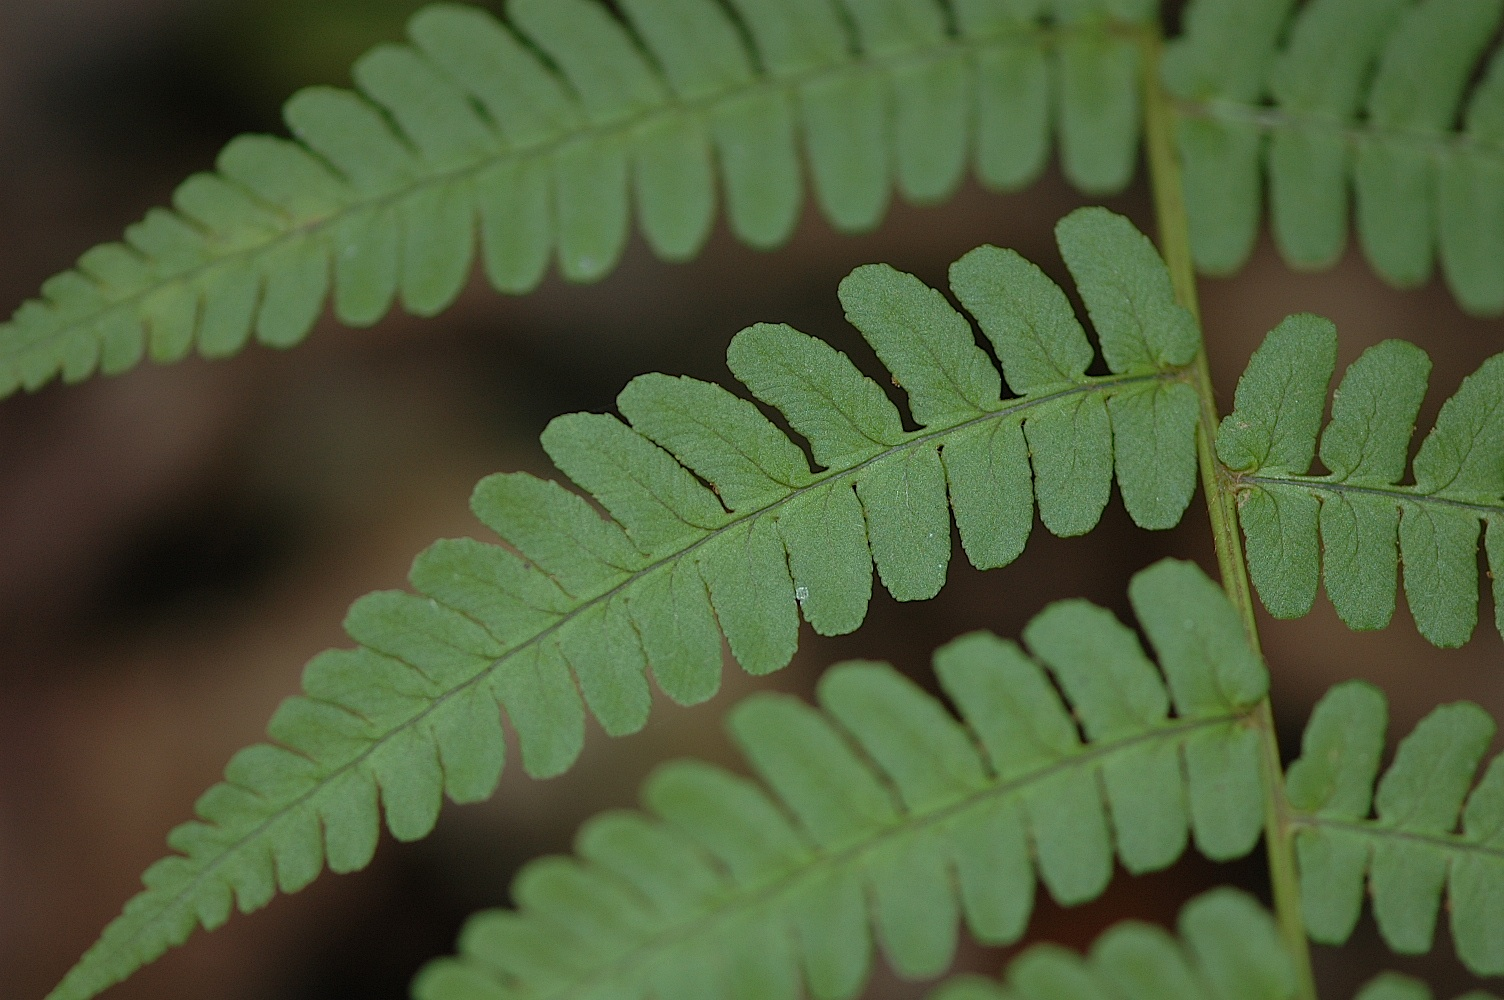 ferns radiate out in many directions with multiple stems known as stipes the stem and leaflets together are known as a frond the leaflets themselves are - Fern Types